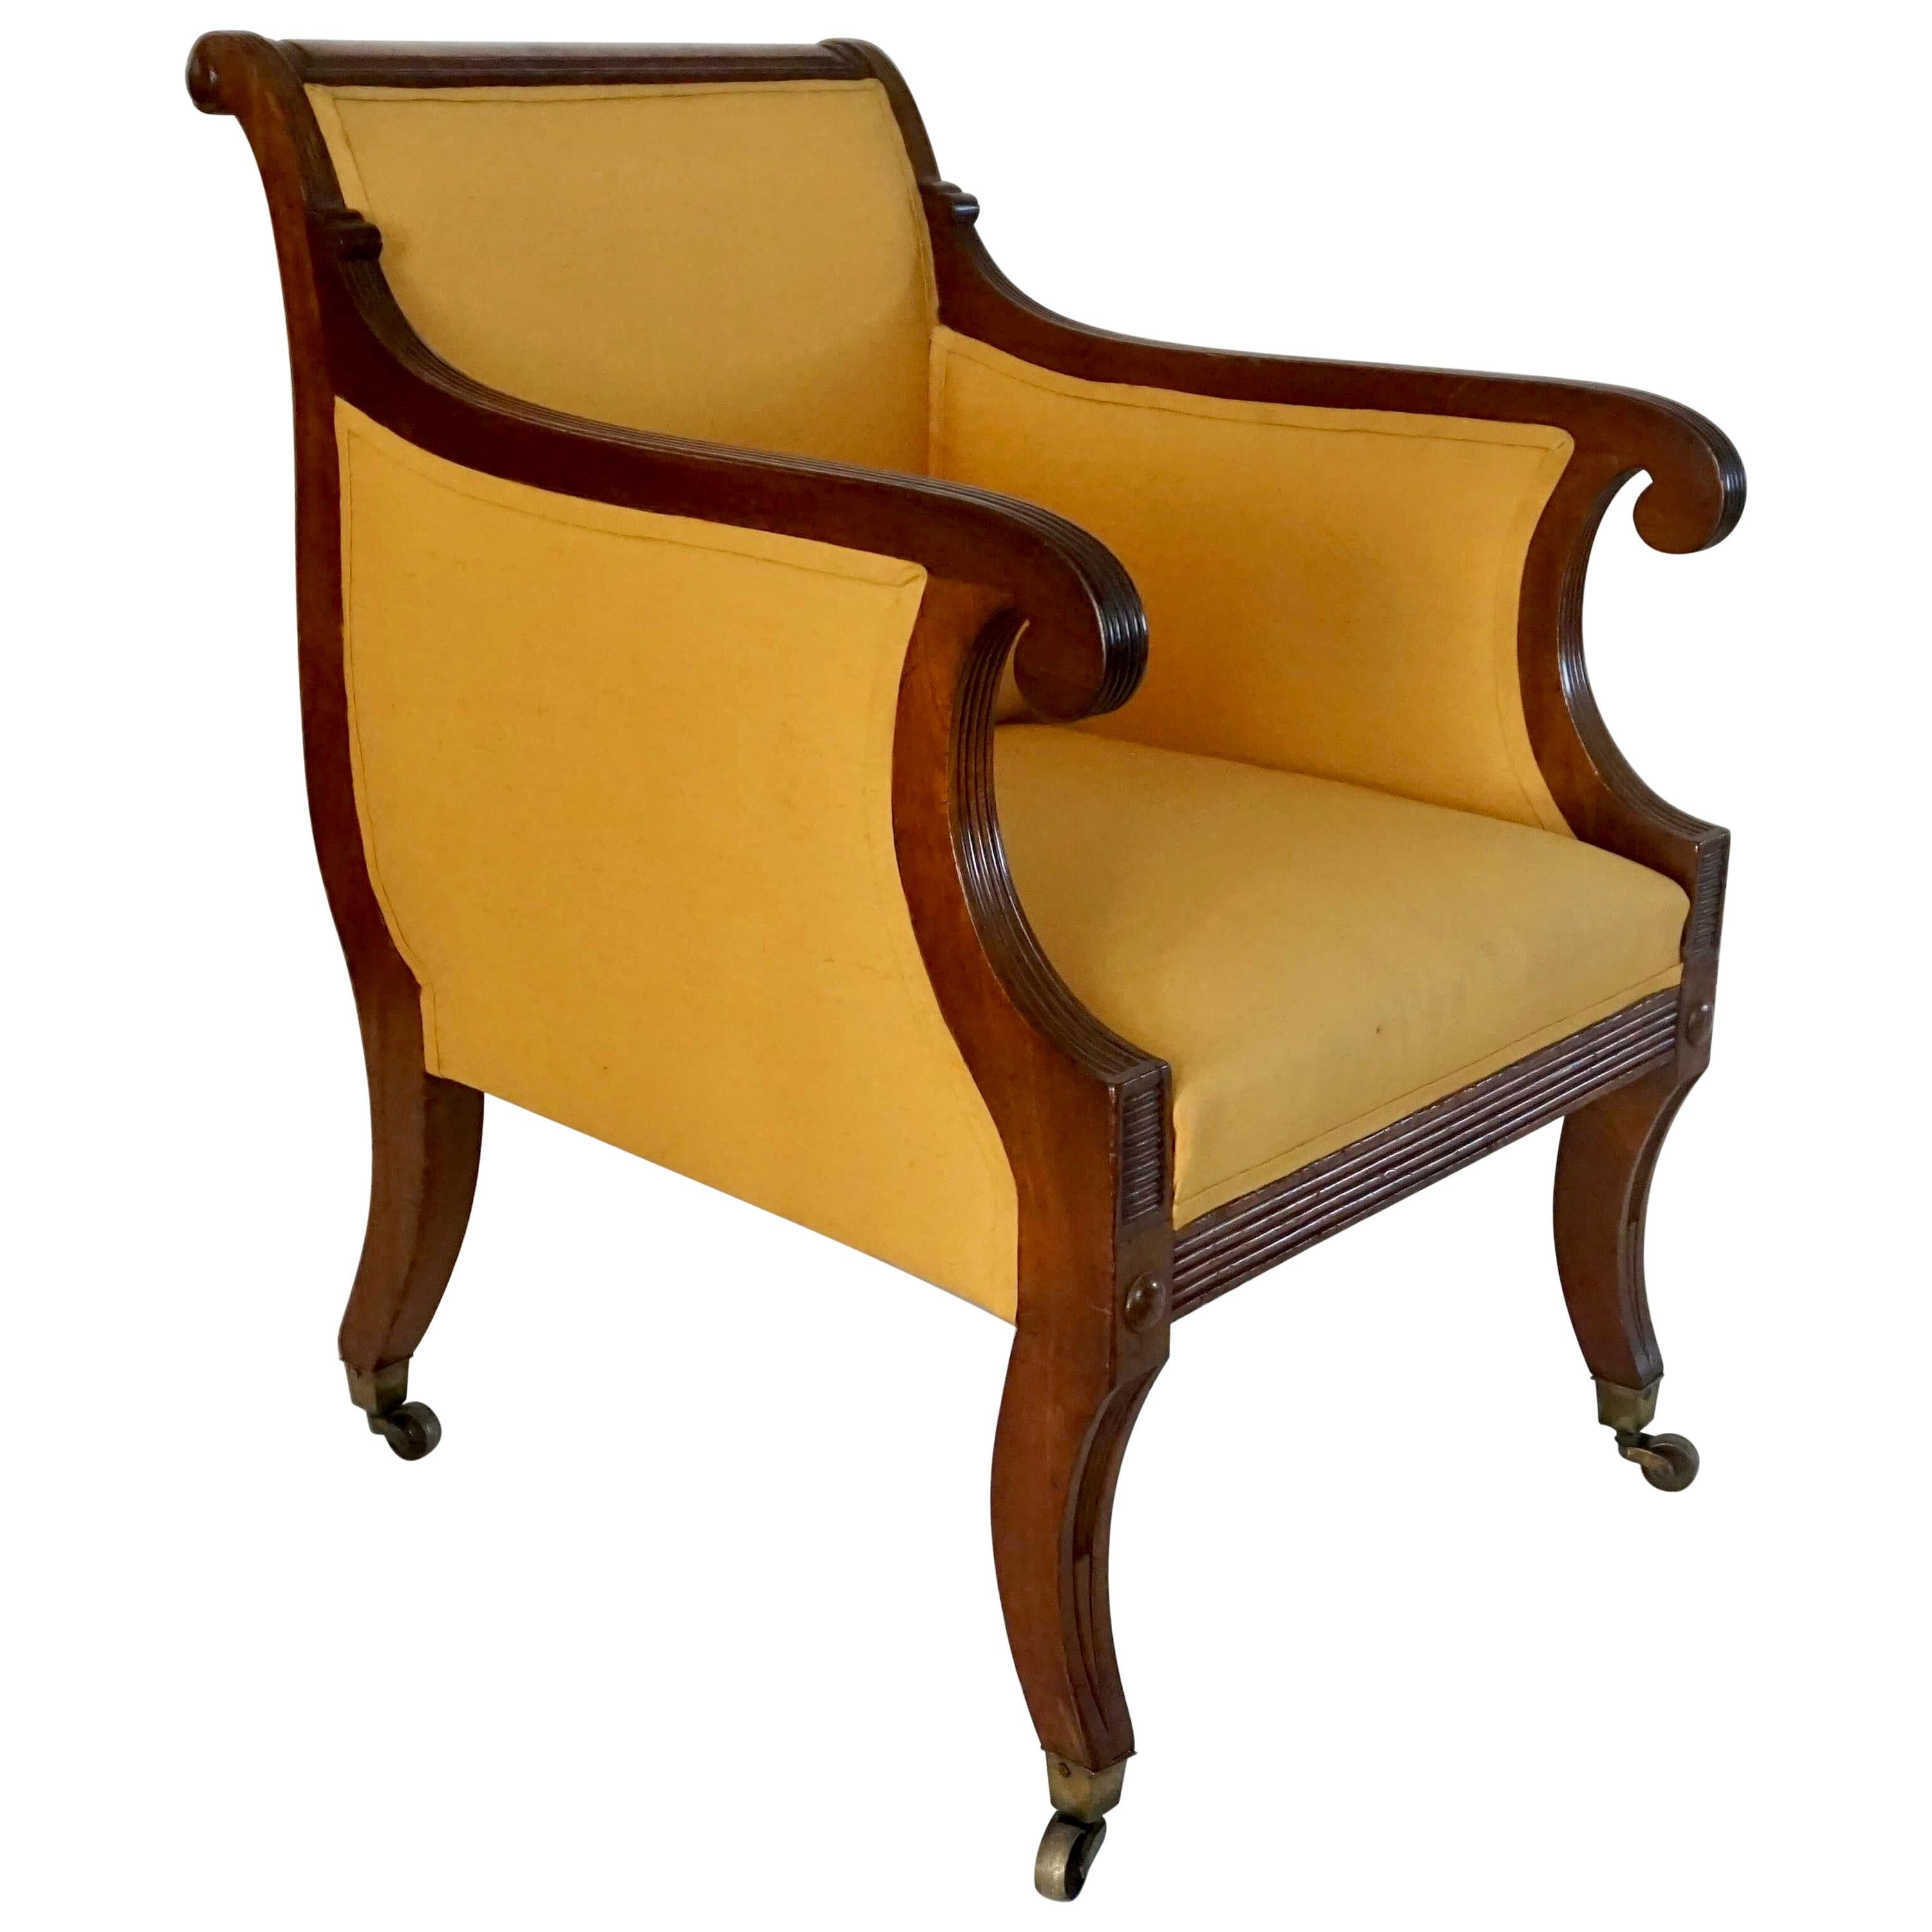 English Regency Upholstered Mahogany Bergère Attributed to Gillows, circa 1810